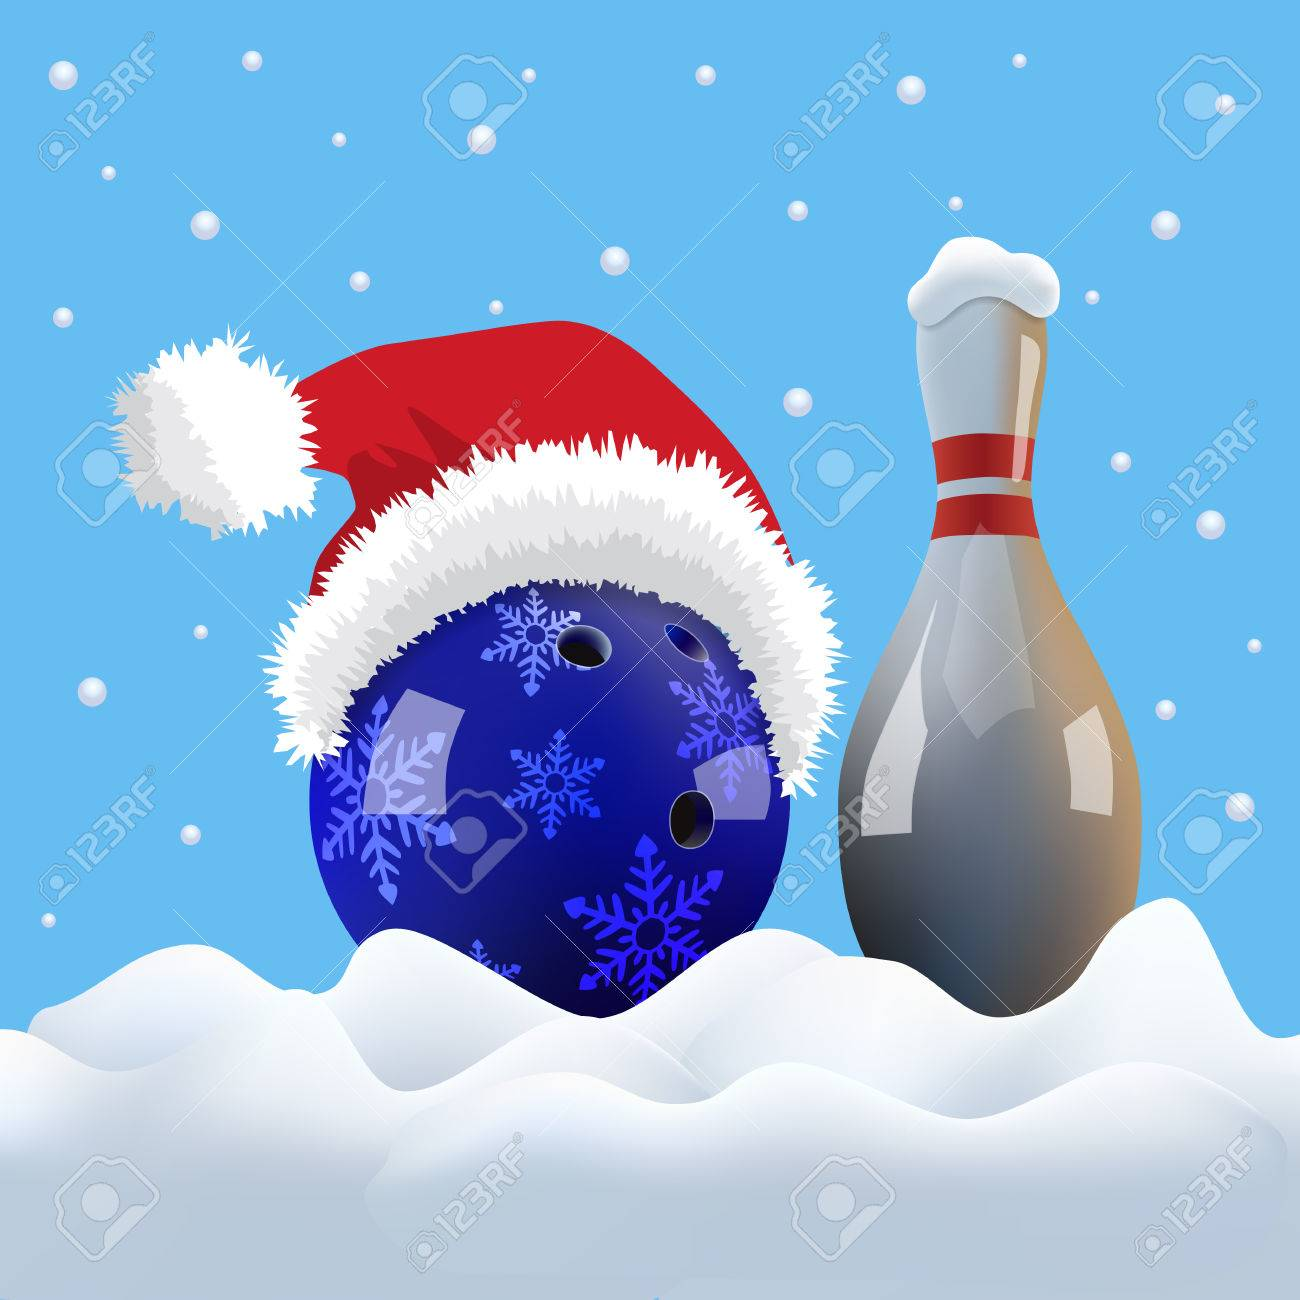 christmas bowling ball with santa cap and pin on snowing background